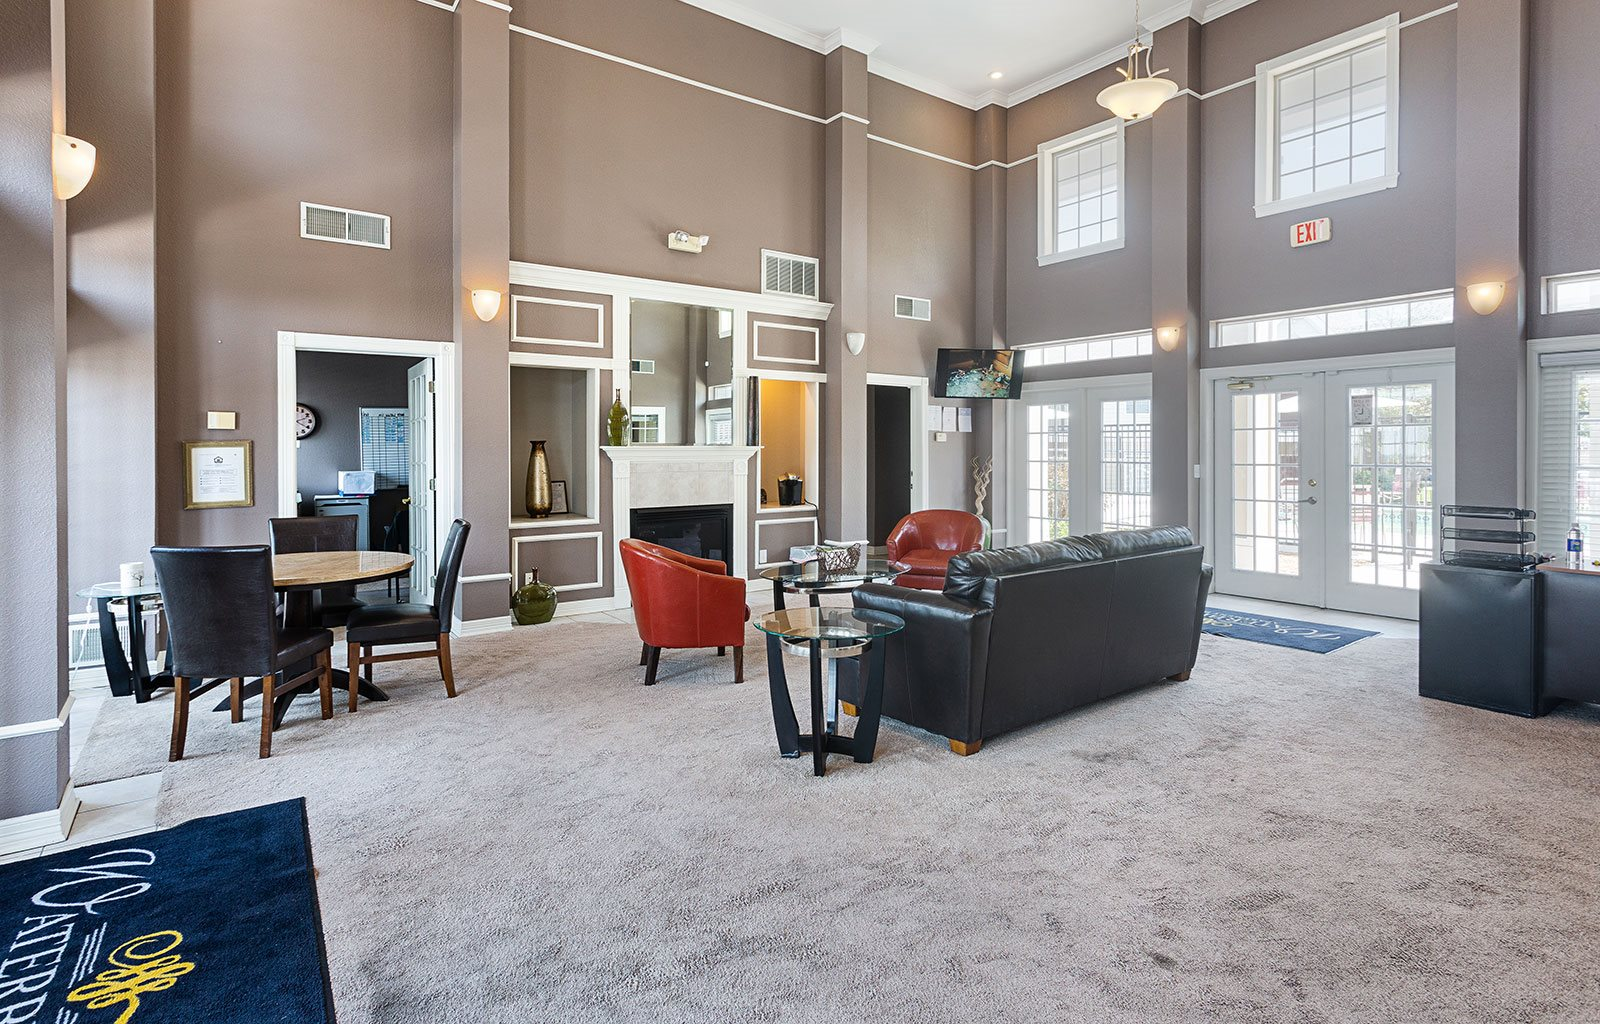 Leasing office interior-Waterbrook Apartments Lincoln, NE